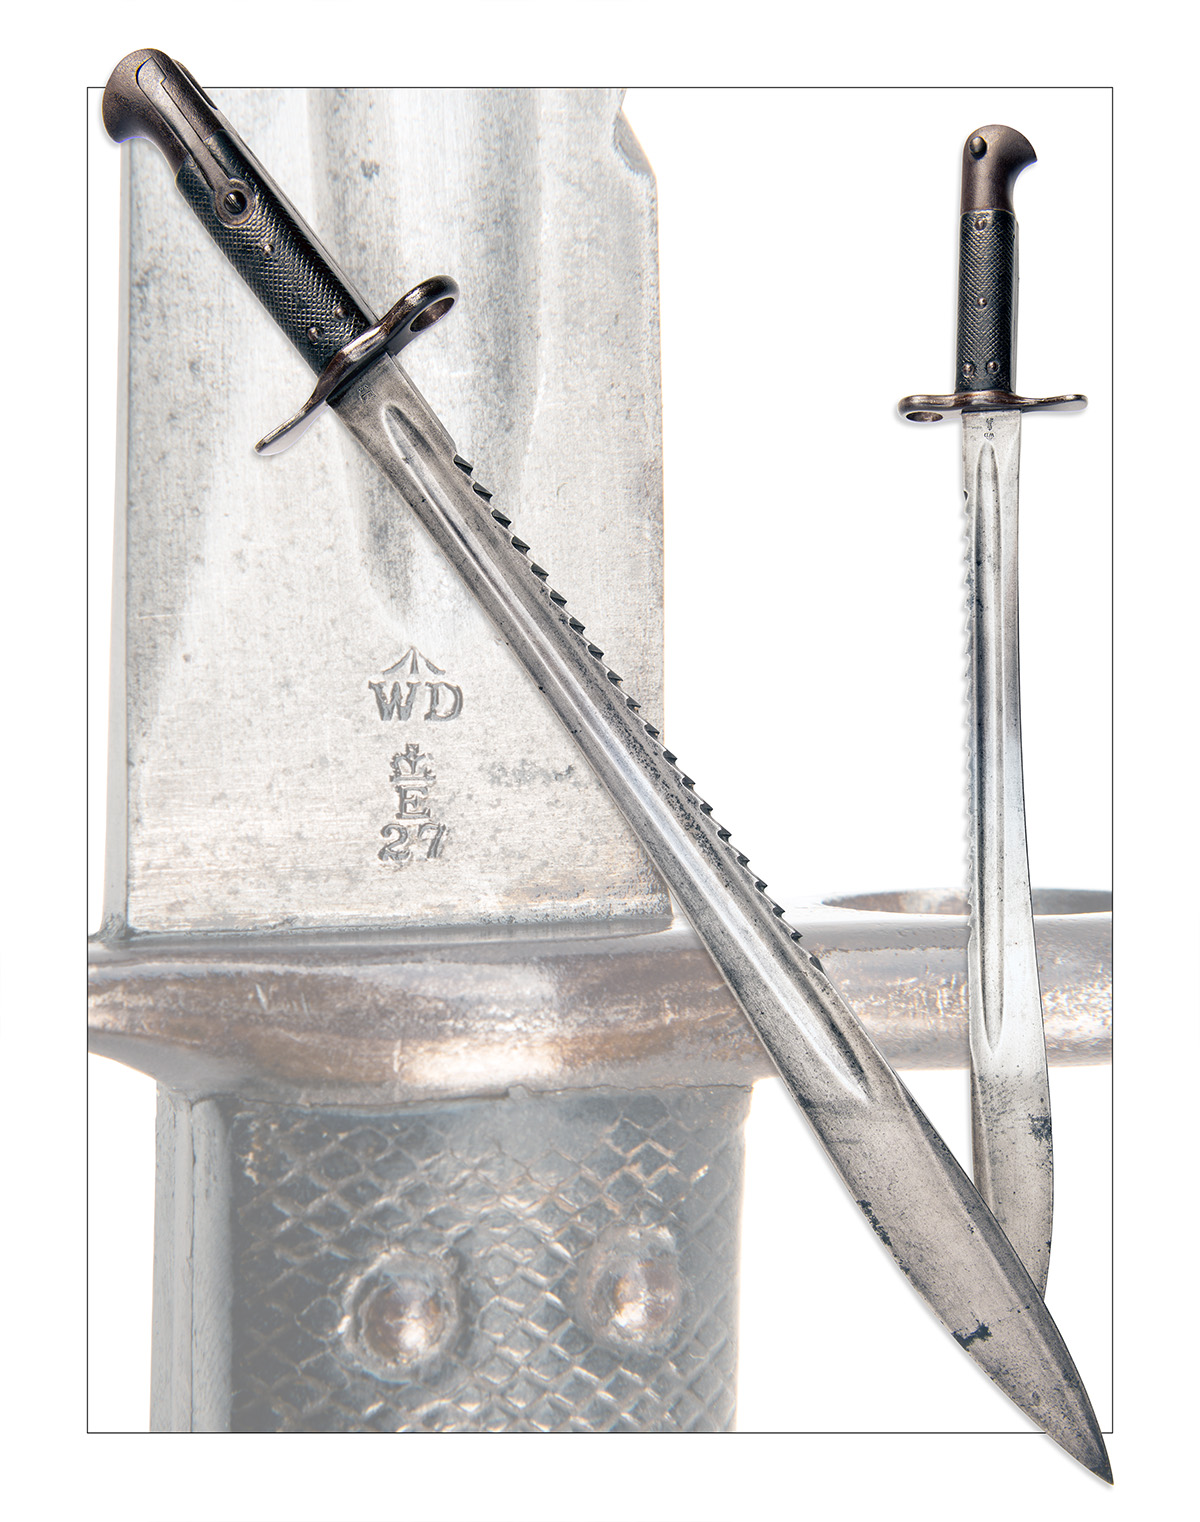 Lot 215 - AN EXCEPTIONALLY RARE BRITISH 'ELCHO' SAW-BACK BAYONET FOR THE MARTINI-HENRY SERVICE RIFLE, circa